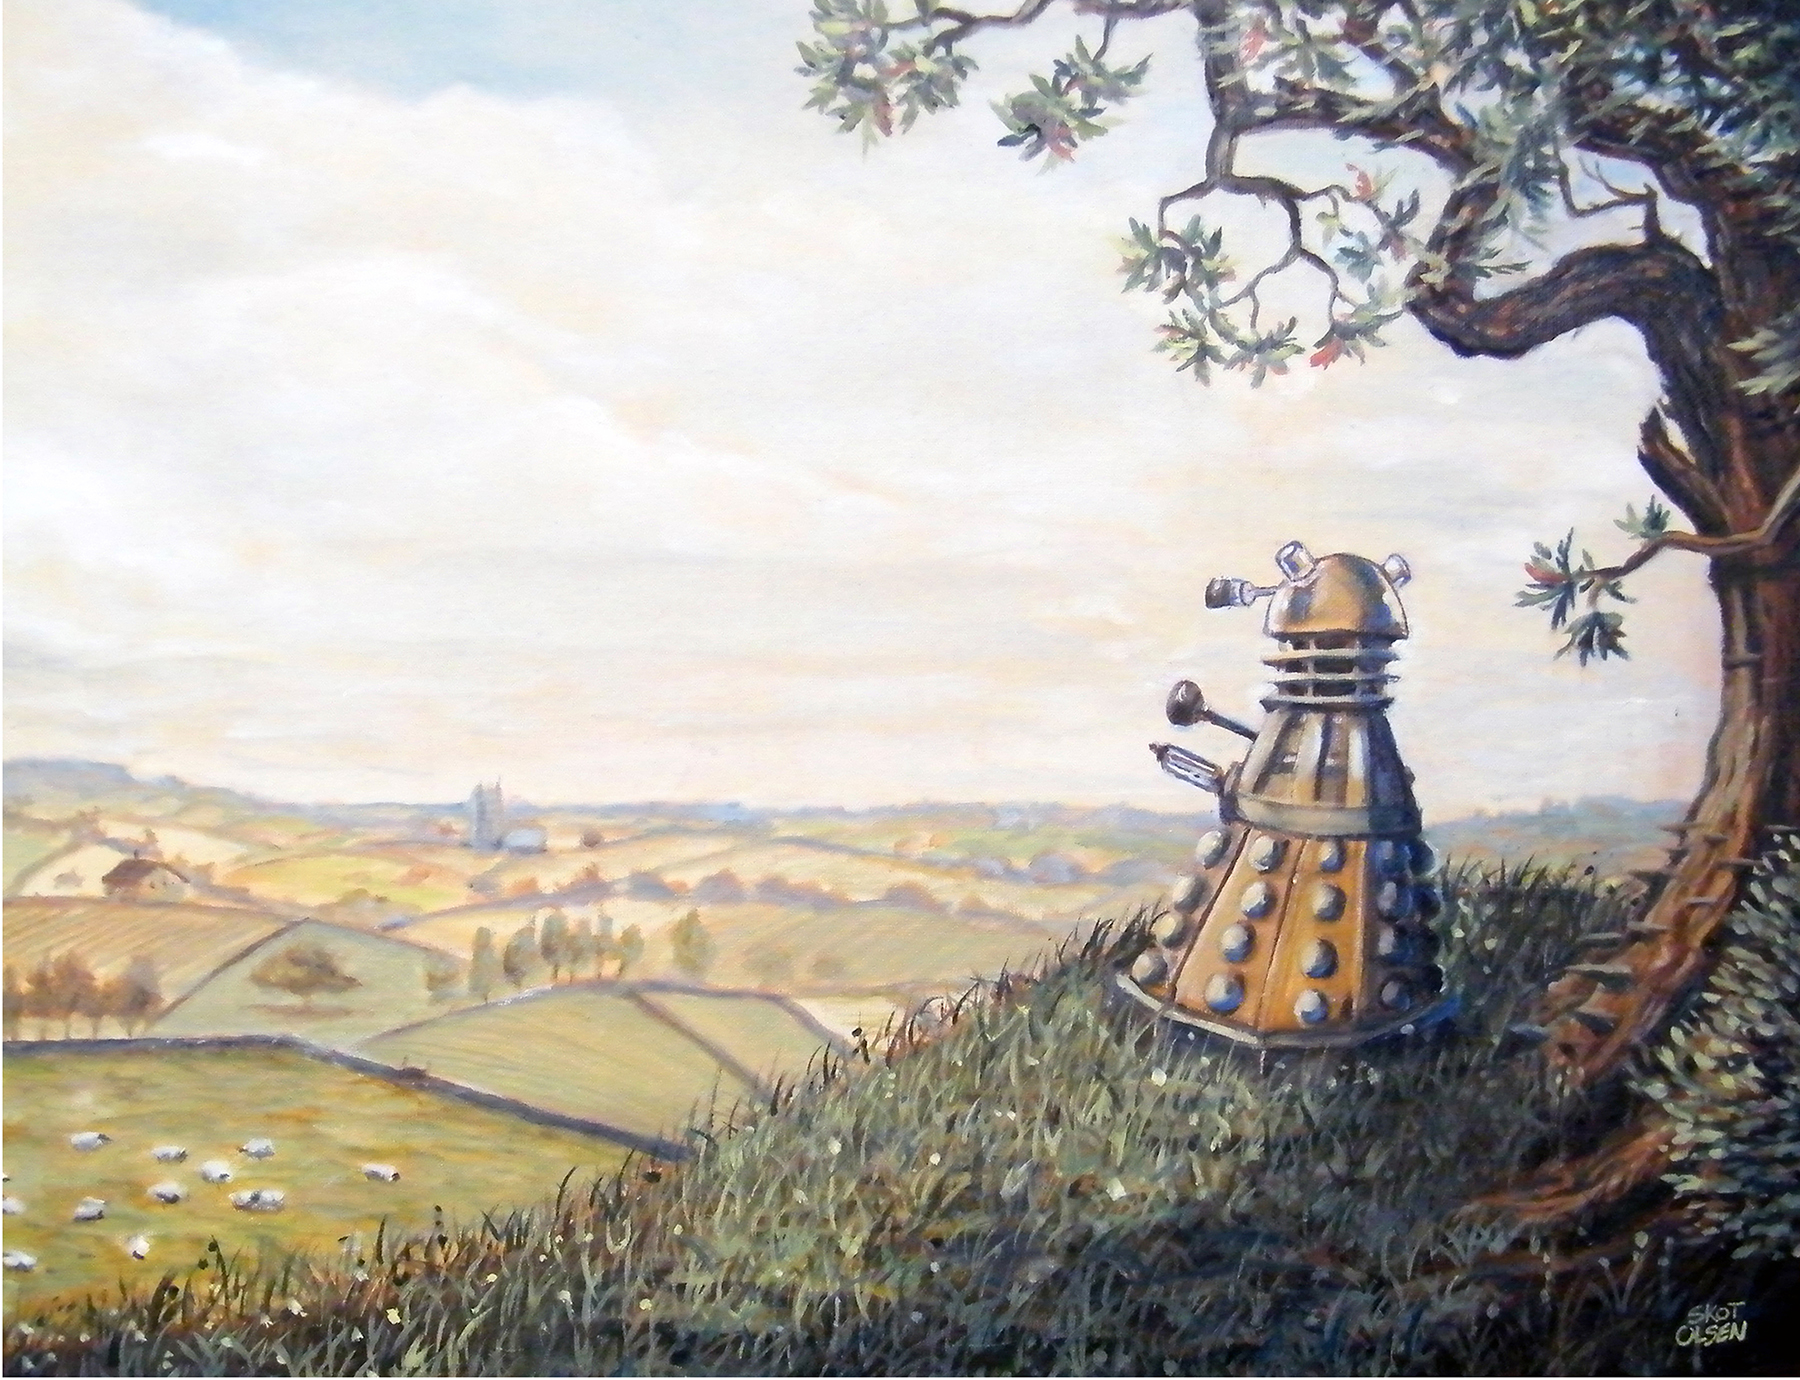 A Rather Dalek Afternoon